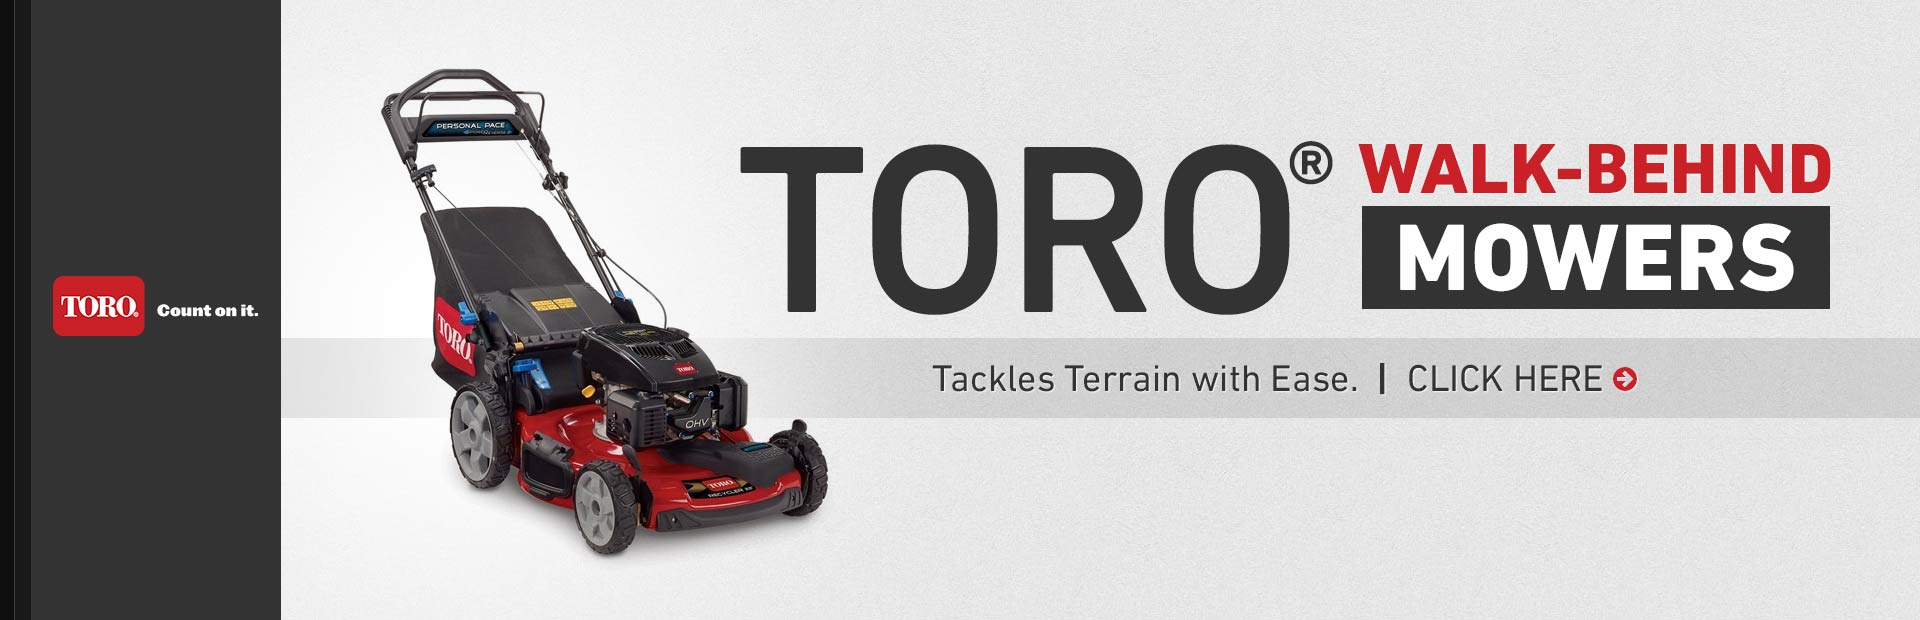 Toro® Walk-Behind Mowers: Click here to view the models.